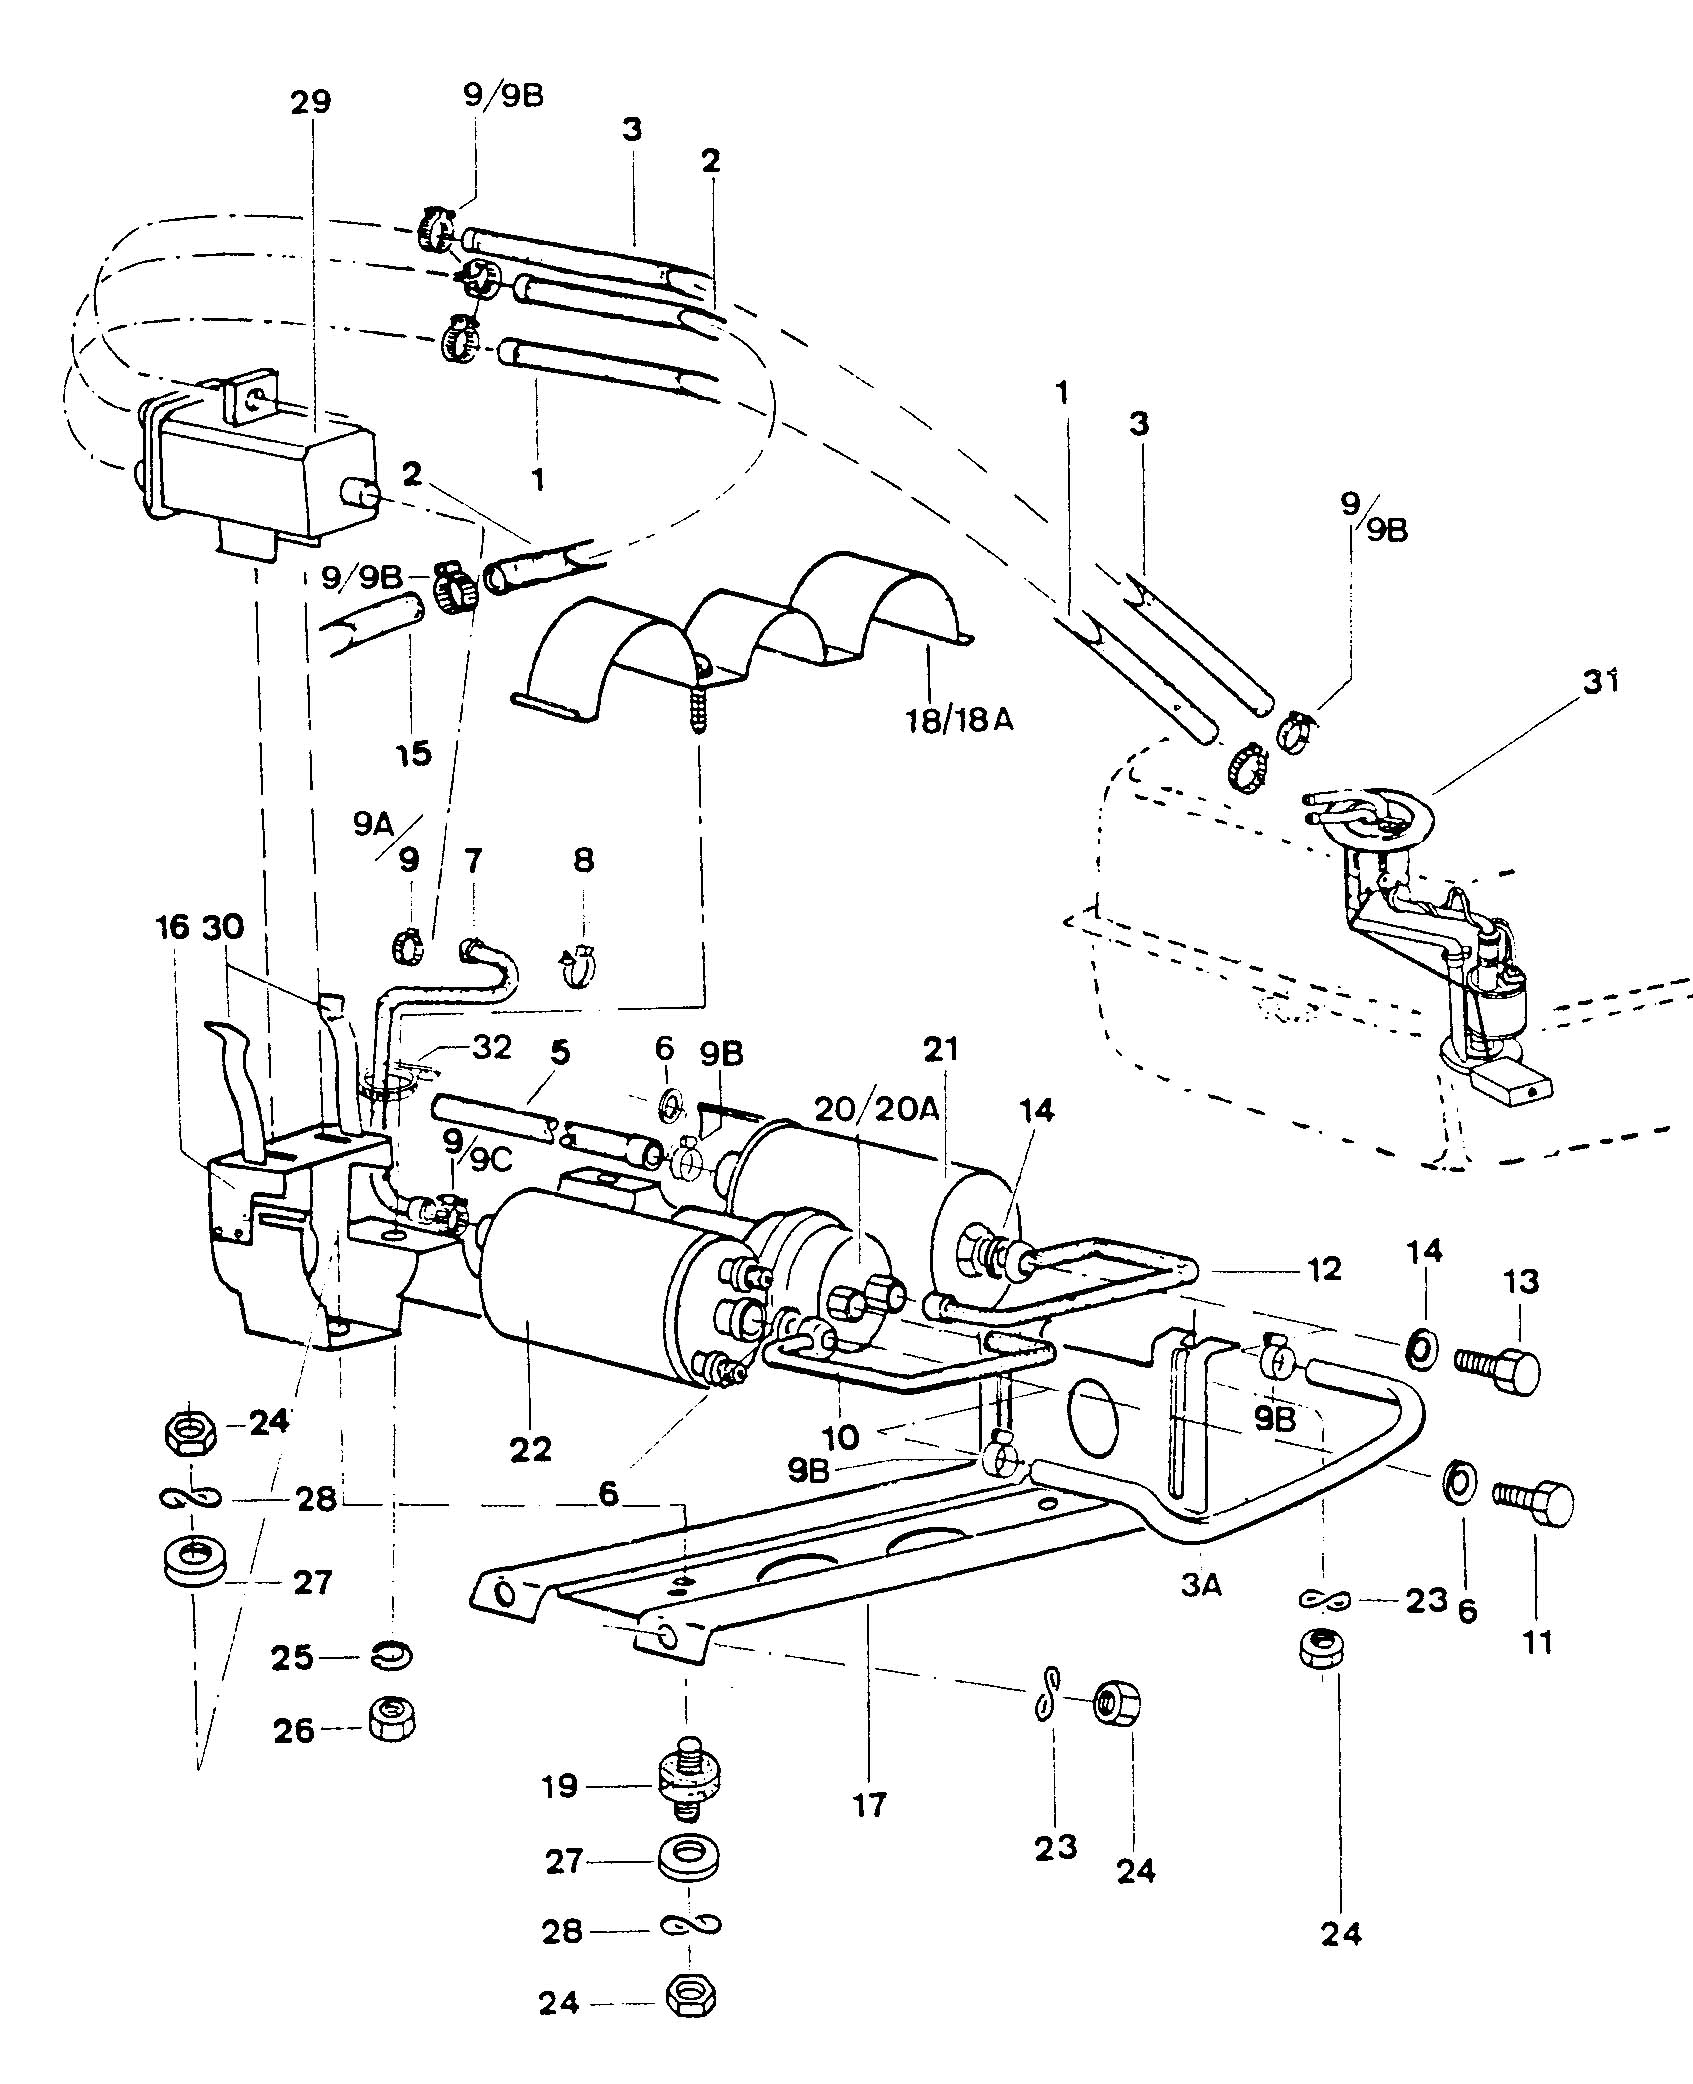 1988 vw fox wiring diagram